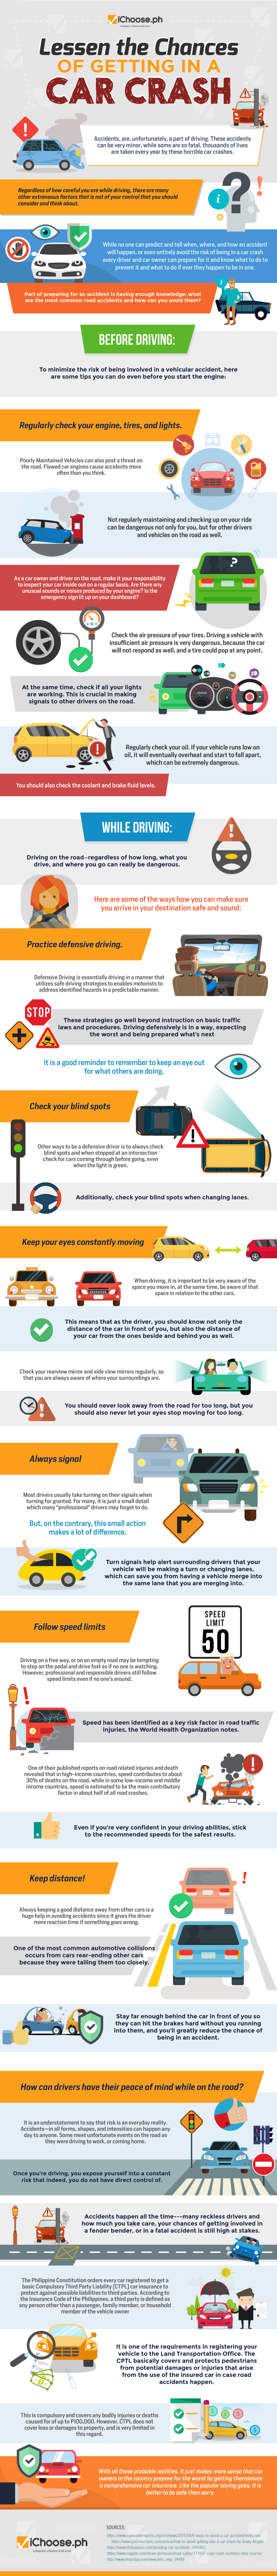 Lessen The Chances Of Getting In A Car Crash